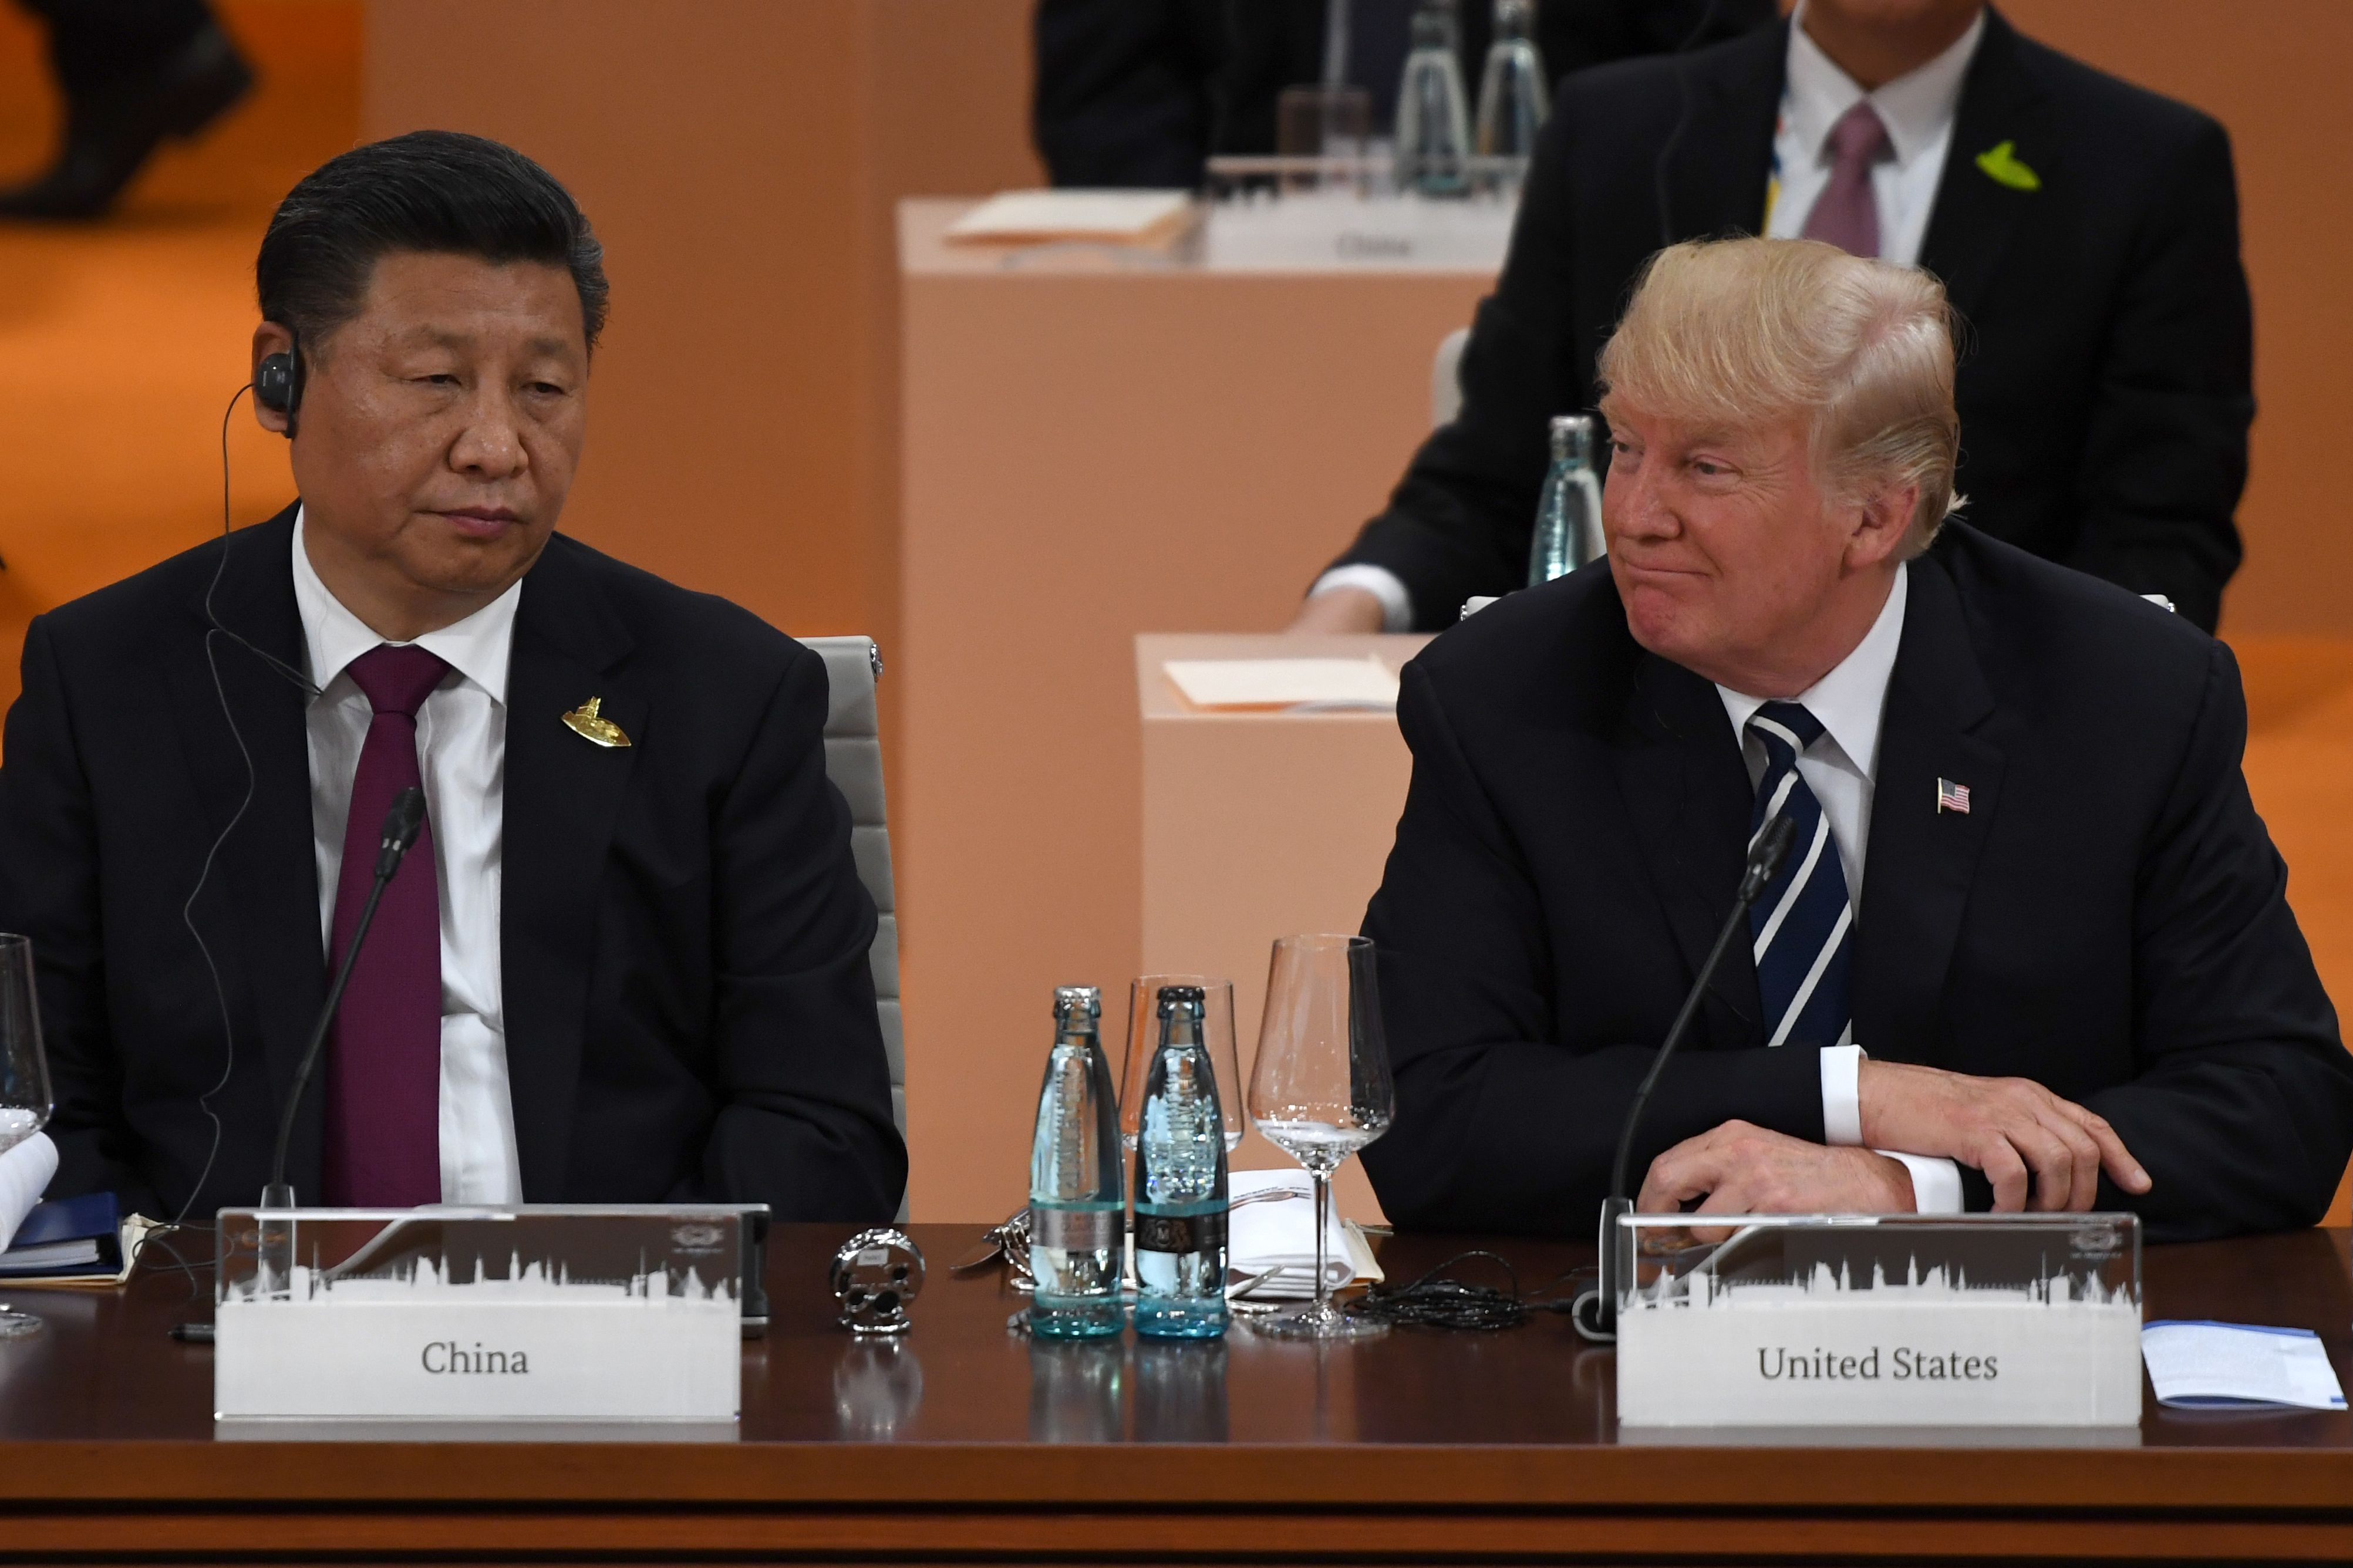 China's President Xi Jinping (L) and US President Donald Trump attend a working session on the first day of the G20 summit in Hamburg, northern Germany, on July 7, 2017. Leaders of the world's top economies gather from July 7 to 8, 2017 in Germany for likely the stormiest G20 summit in years, with disagreements ranging from wars to climate change and global trade. (PATRIK STOLLARZ/AFP/Getty Images)